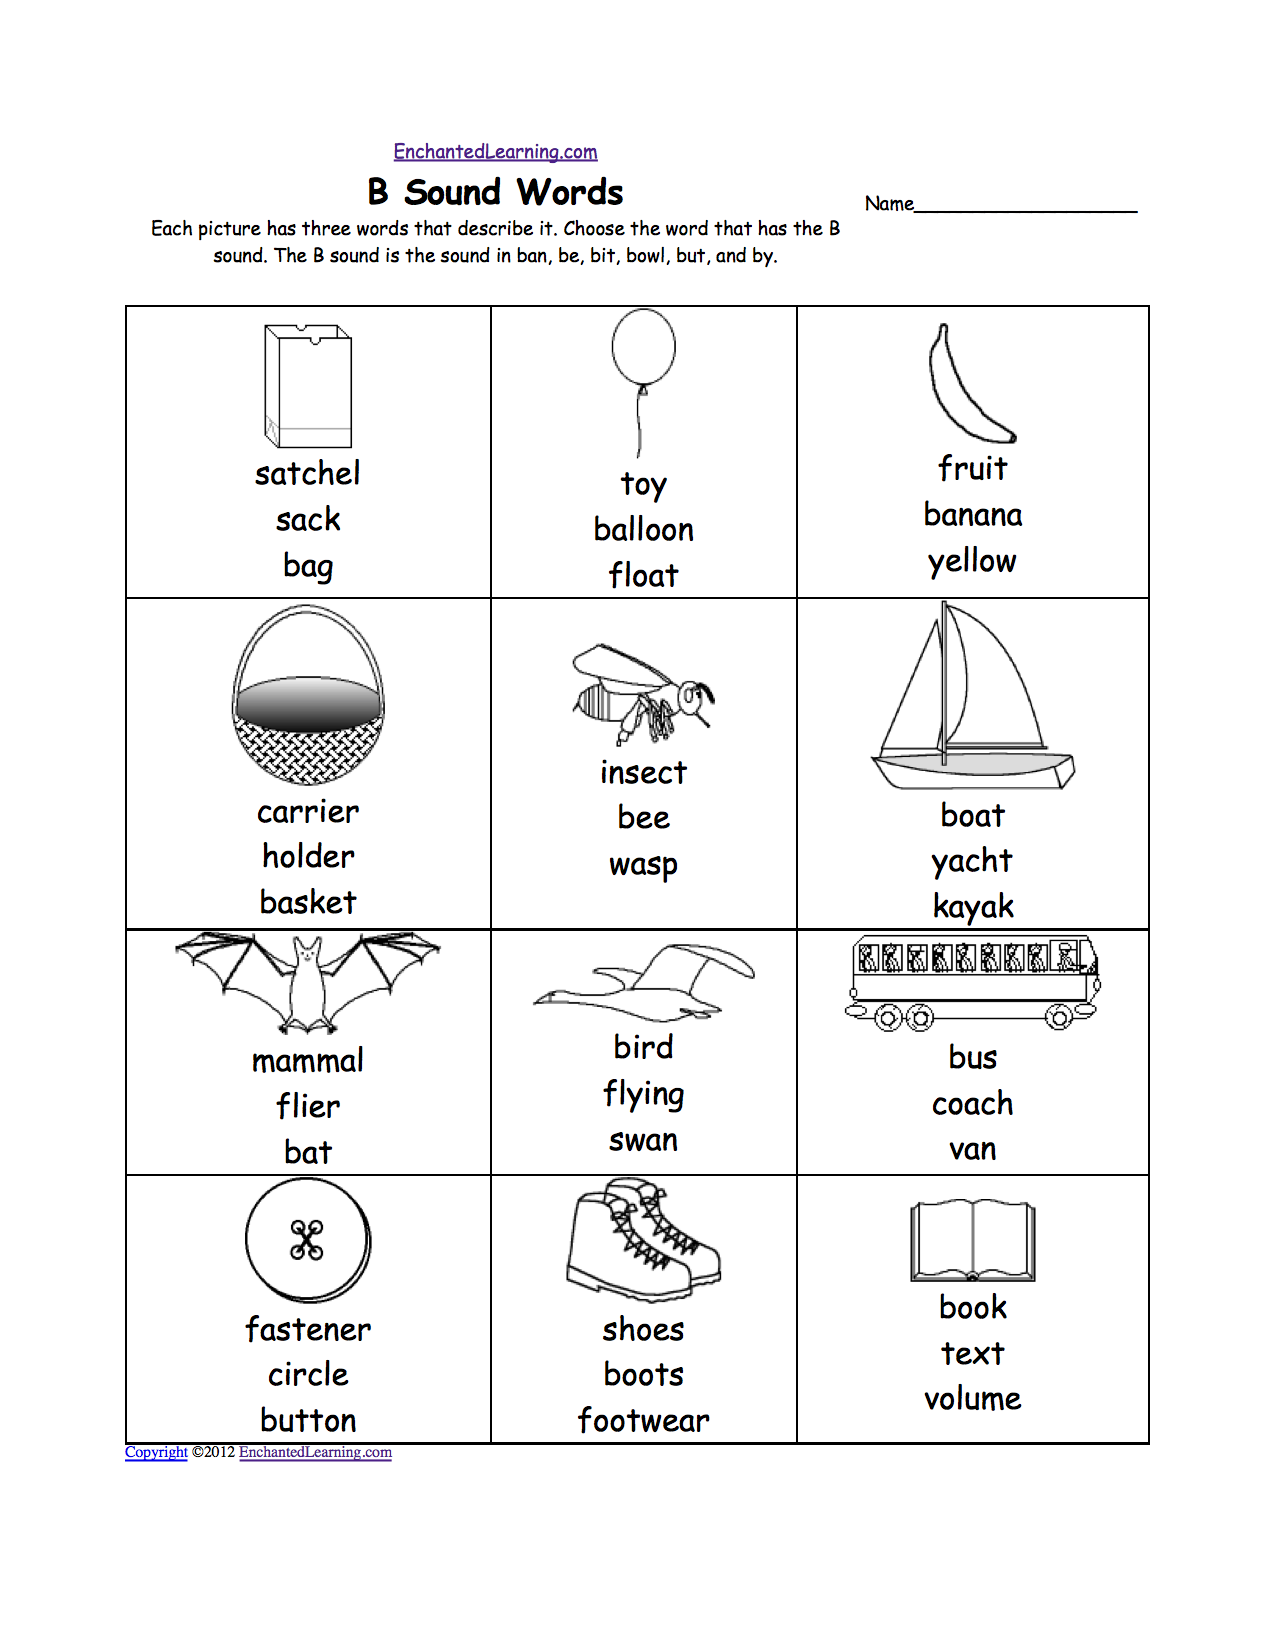 Aldiablosus  Unusual Phonics Worksheets Multiple Choice Worksheets To Print  With Outstanding Quotbquot Sound Phonics Worksheet Multiple Choice Each Picture Has Three Words That Describe It Choose The Word That Has A Quotbquot Sound The Quotbquot Sound Is The Sound  With Charming Multiplication Facts Worksheets  Also From Dna To Protein Worksheet In Addition Direct And Indirect Object Pronouns Spanish Worksheets And Pre K Free Printable Worksheets As Well As Apollo  Movie Worksheet Additionally Union And Intersection Of Sets Worksheet From Enchantedlearningcom With Aldiablosus  Outstanding Phonics Worksheets Multiple Choice Worksheets To Print  With Charming Quotbquot Sound Phonics Worksheet Multiple Choice Each Picture Has Three Words That Describe It Choose The Word That Has A Quotbquot Sound The Quotbquot Sound Is The Sound  And Unusual Multiplication Facts Worksheets  Also From Dna To Protein Worksheet In Addition Direct And Indirect Object Pronouns Spanish Worksheets From Enchantedlearningcom